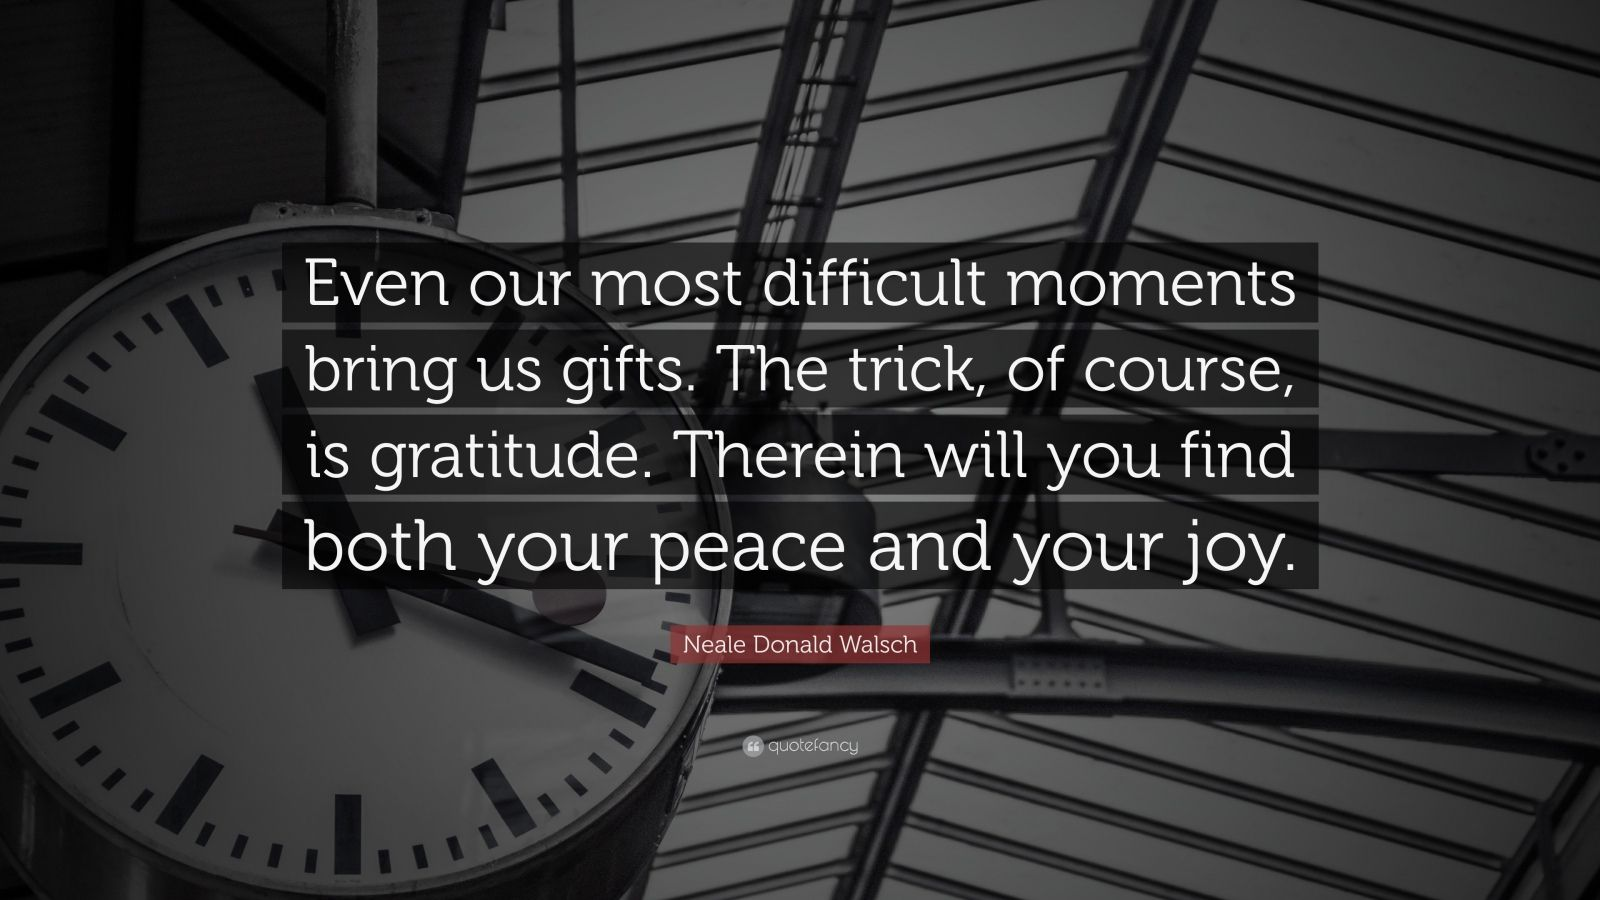 """Neale Donald Walsch Quote: """"Even our most difficult moments bring us gifts. The trick, of course, is gratitude. Therein will you find both your peace and your joy."""""""